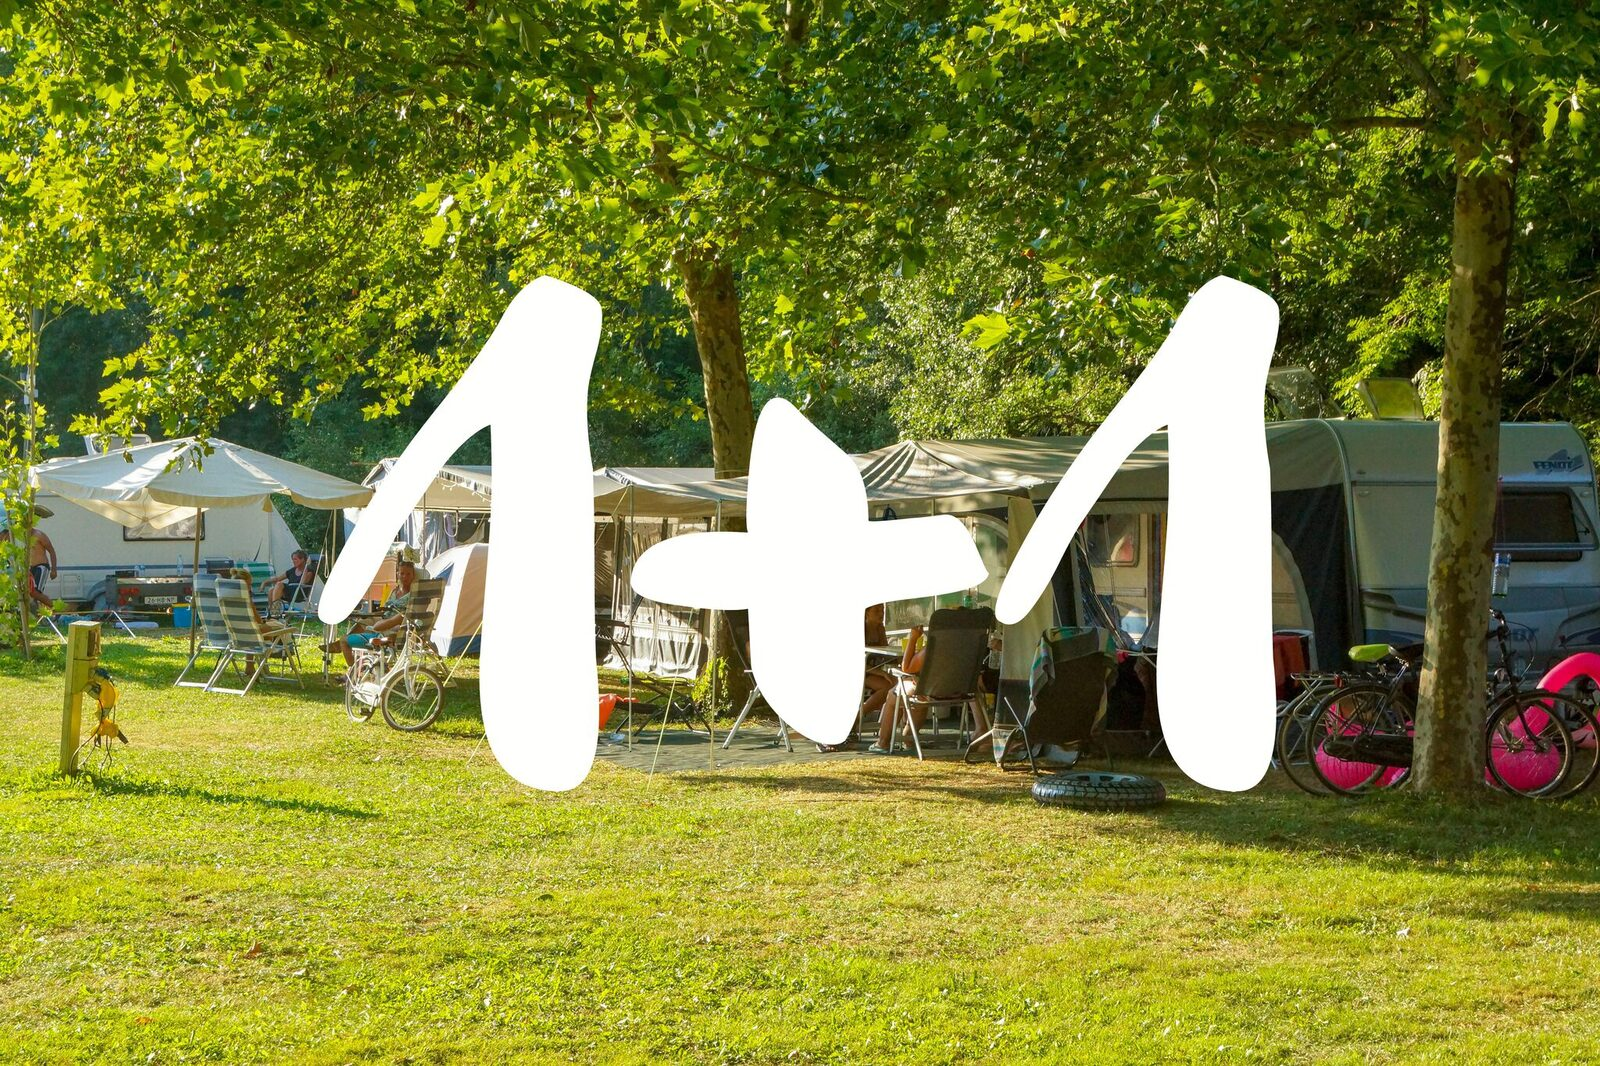 La Draille: 1+1 weeks camping